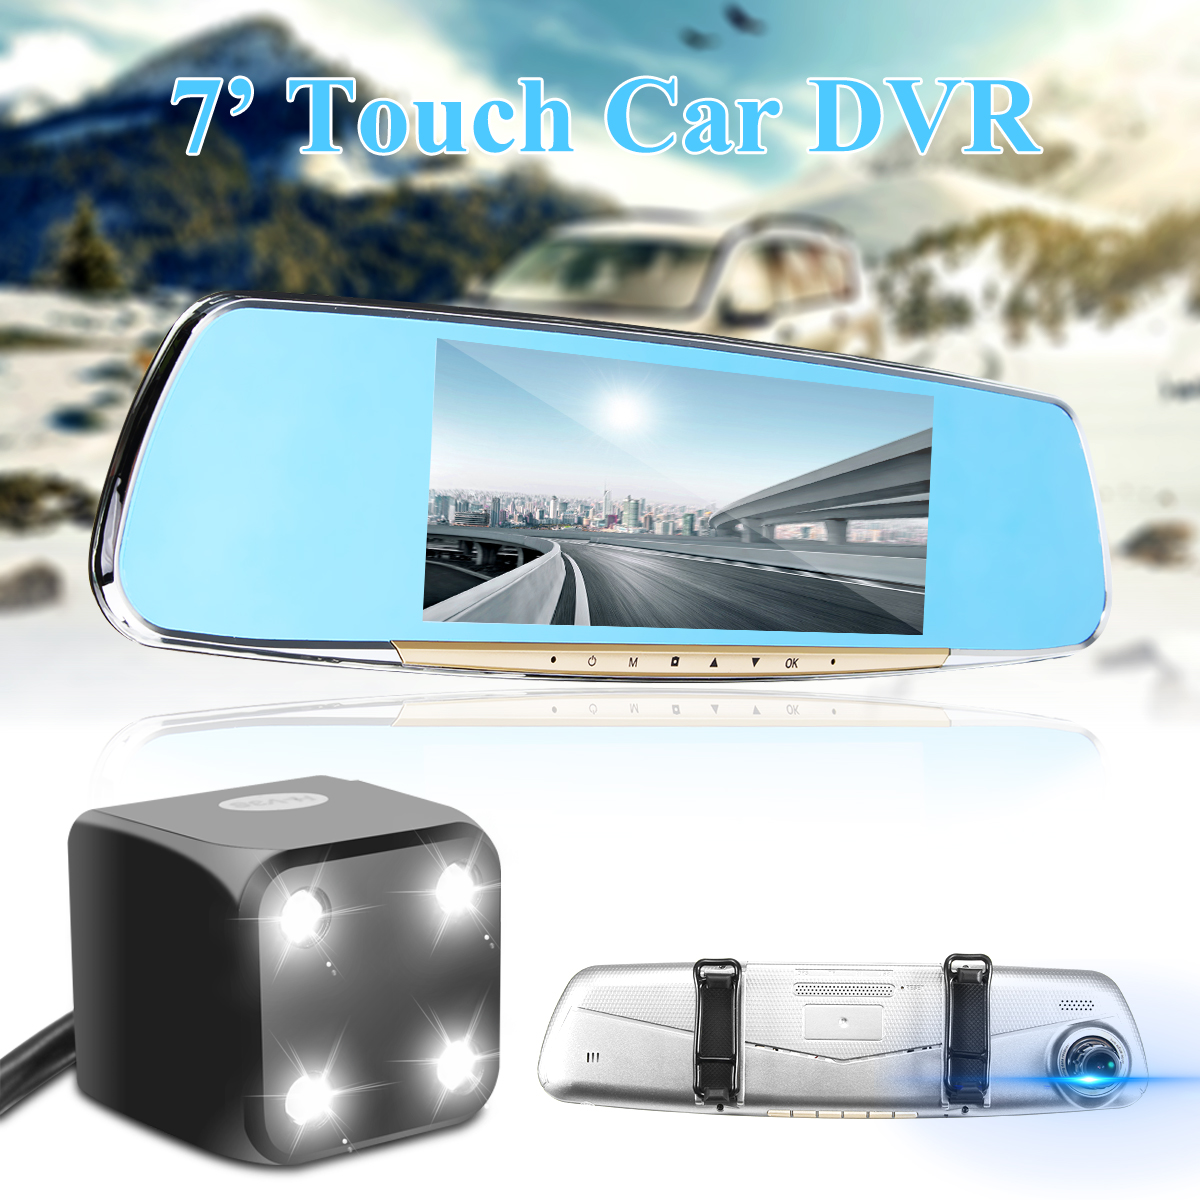 H15 7 Inch Touch Car DVR Dual Lens Android 4.5 With WIFI bluetooth Handsfree And GPS